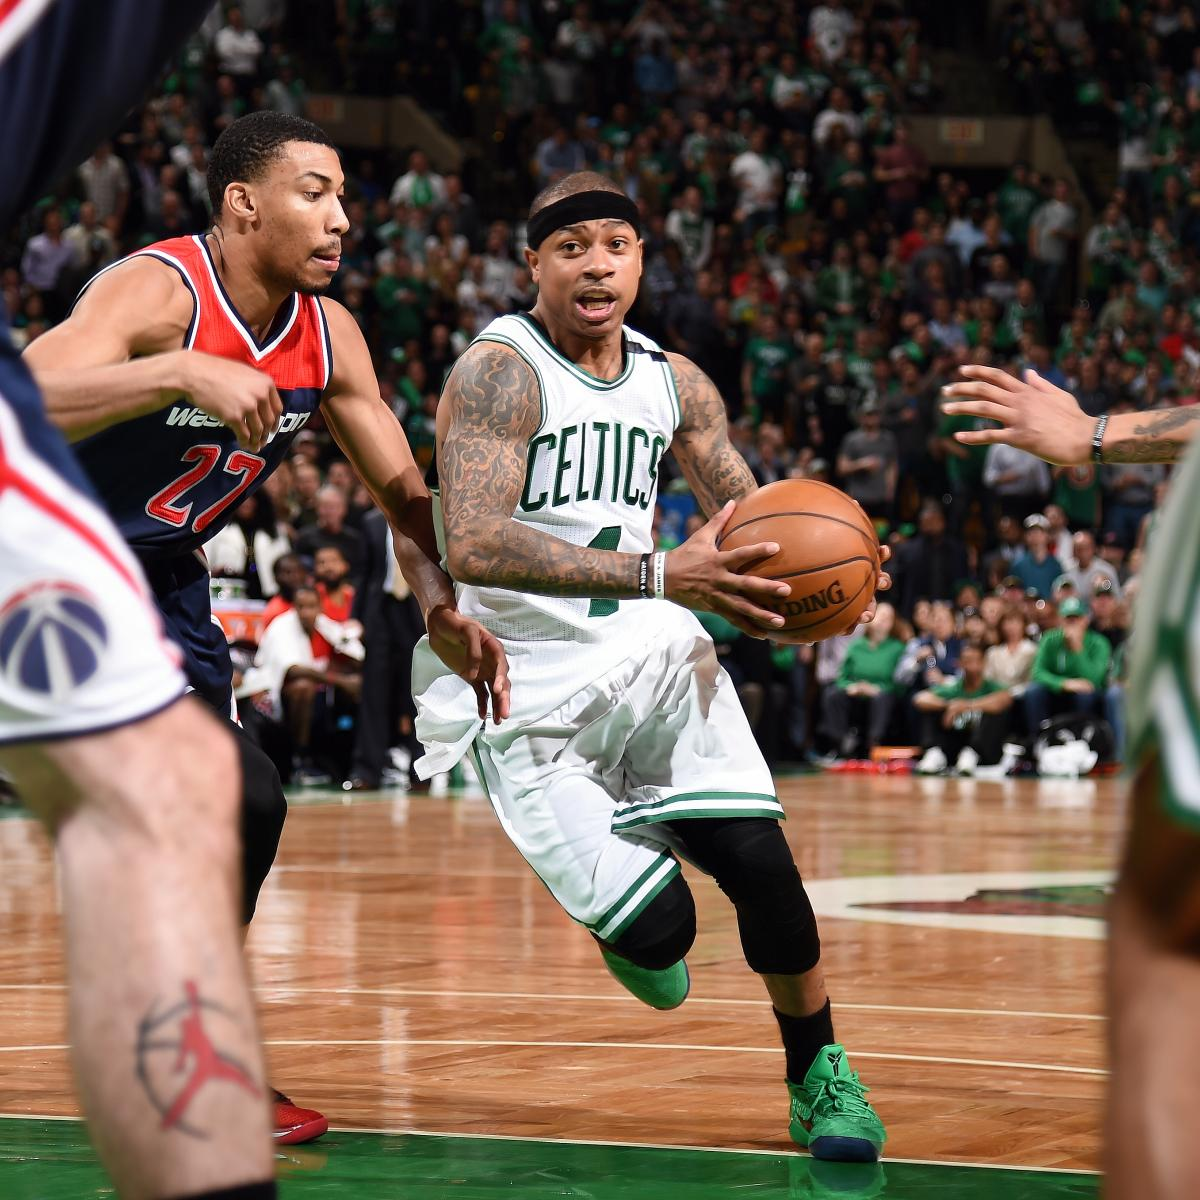 Nuggets Fall In Overtime To Wizards: Isaiah Thomas' 53 Points Power Celtics To 129-119 OT Win